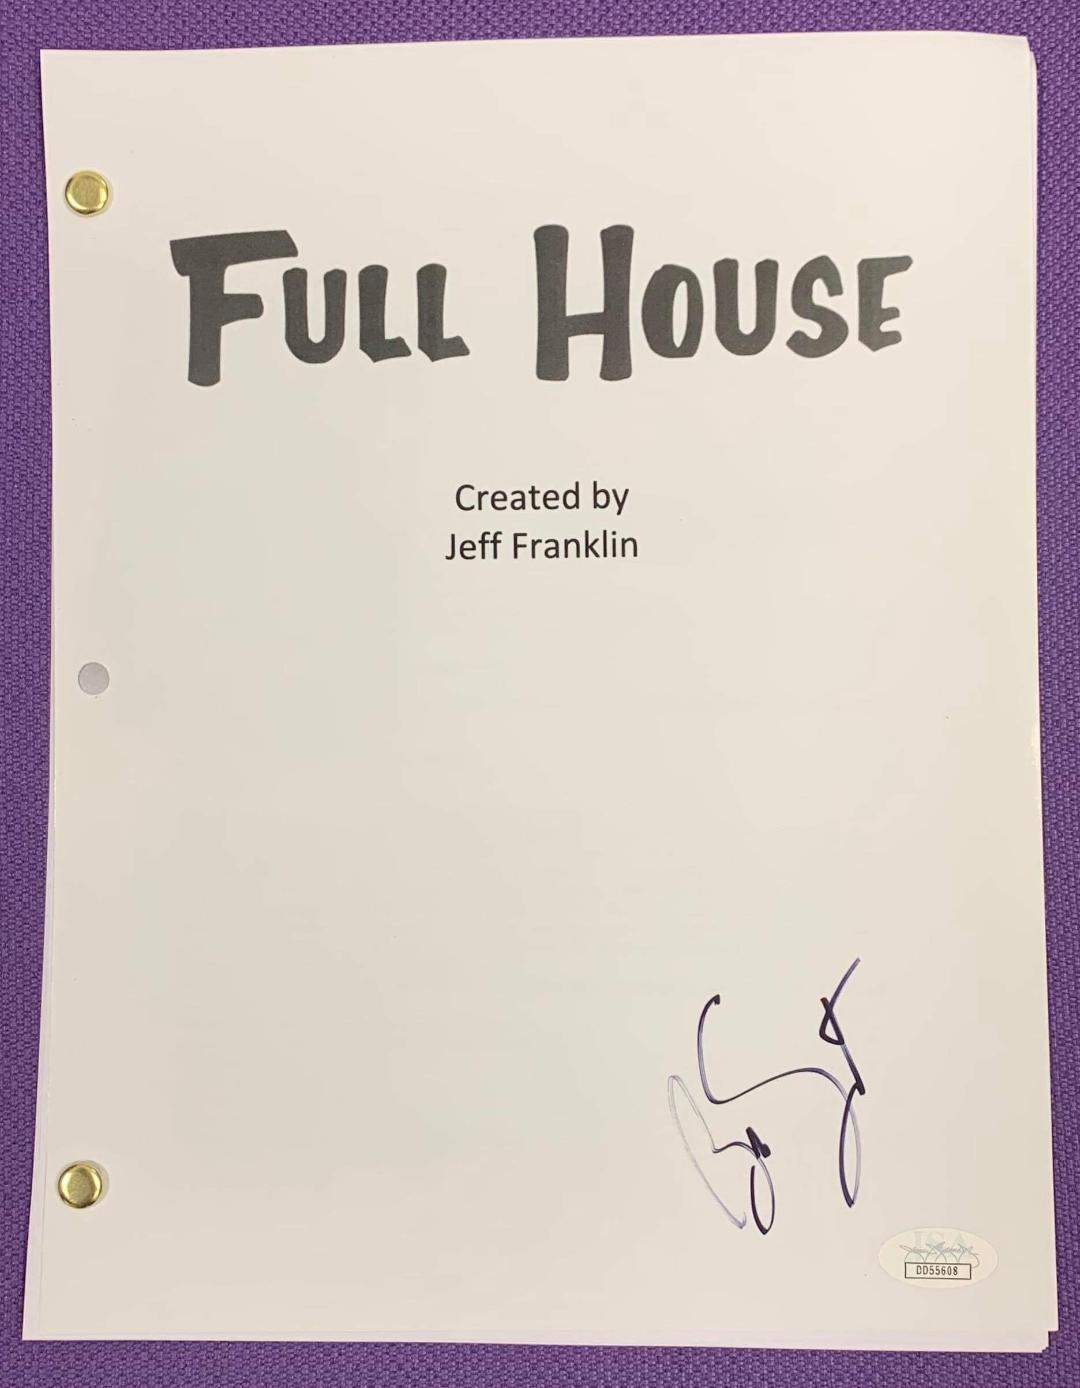 Full house saget autograph